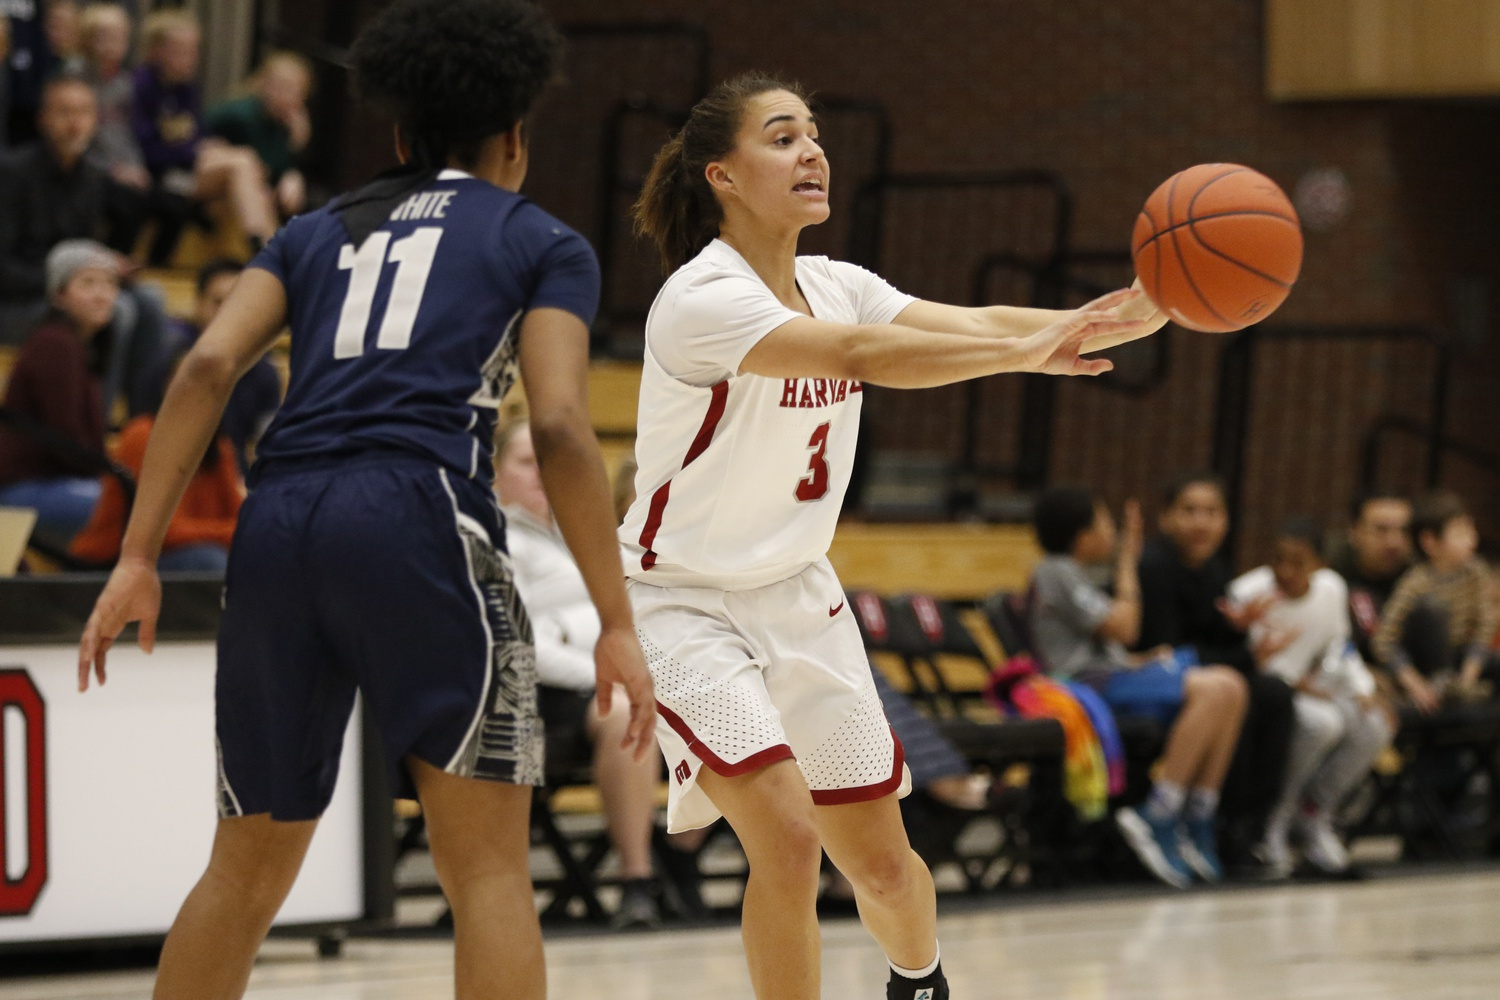 Benzan's 13-point performance against Georgetown in the 2019 Women's National Invitational Tournament would prove to be her last appearance in a Harvard uniform.